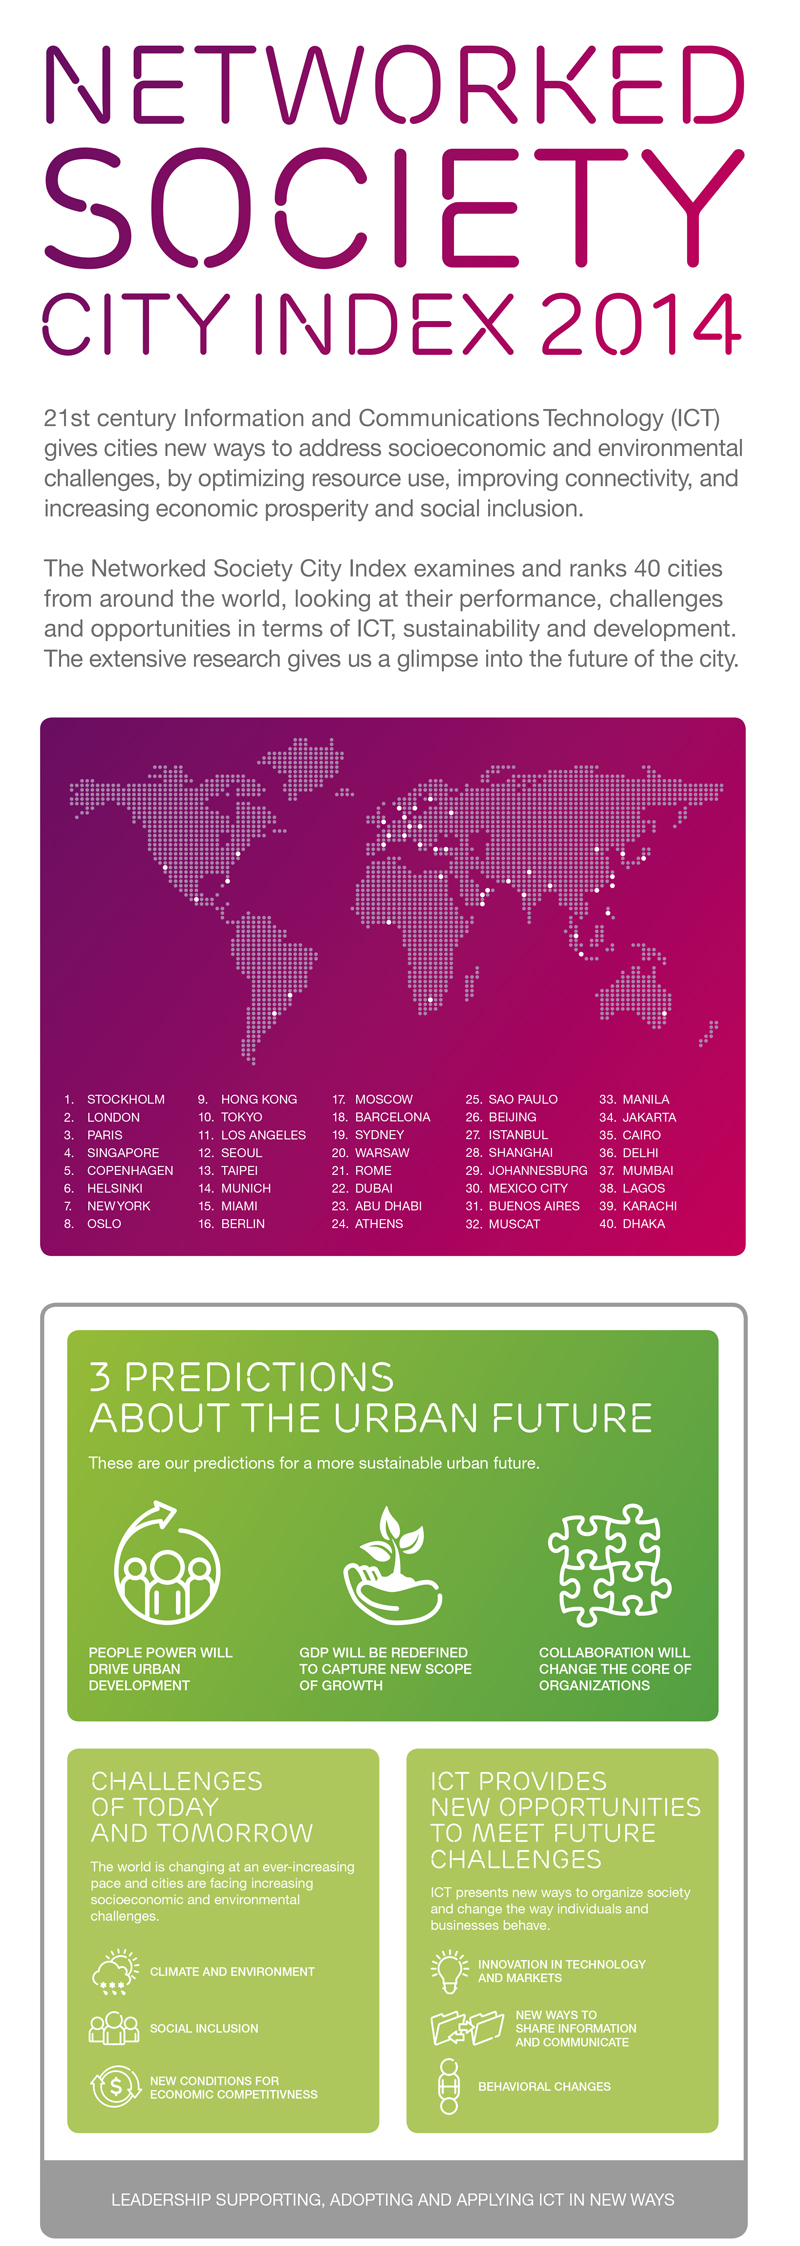 Ericsson Networked Society City Index 2014 infographic summary